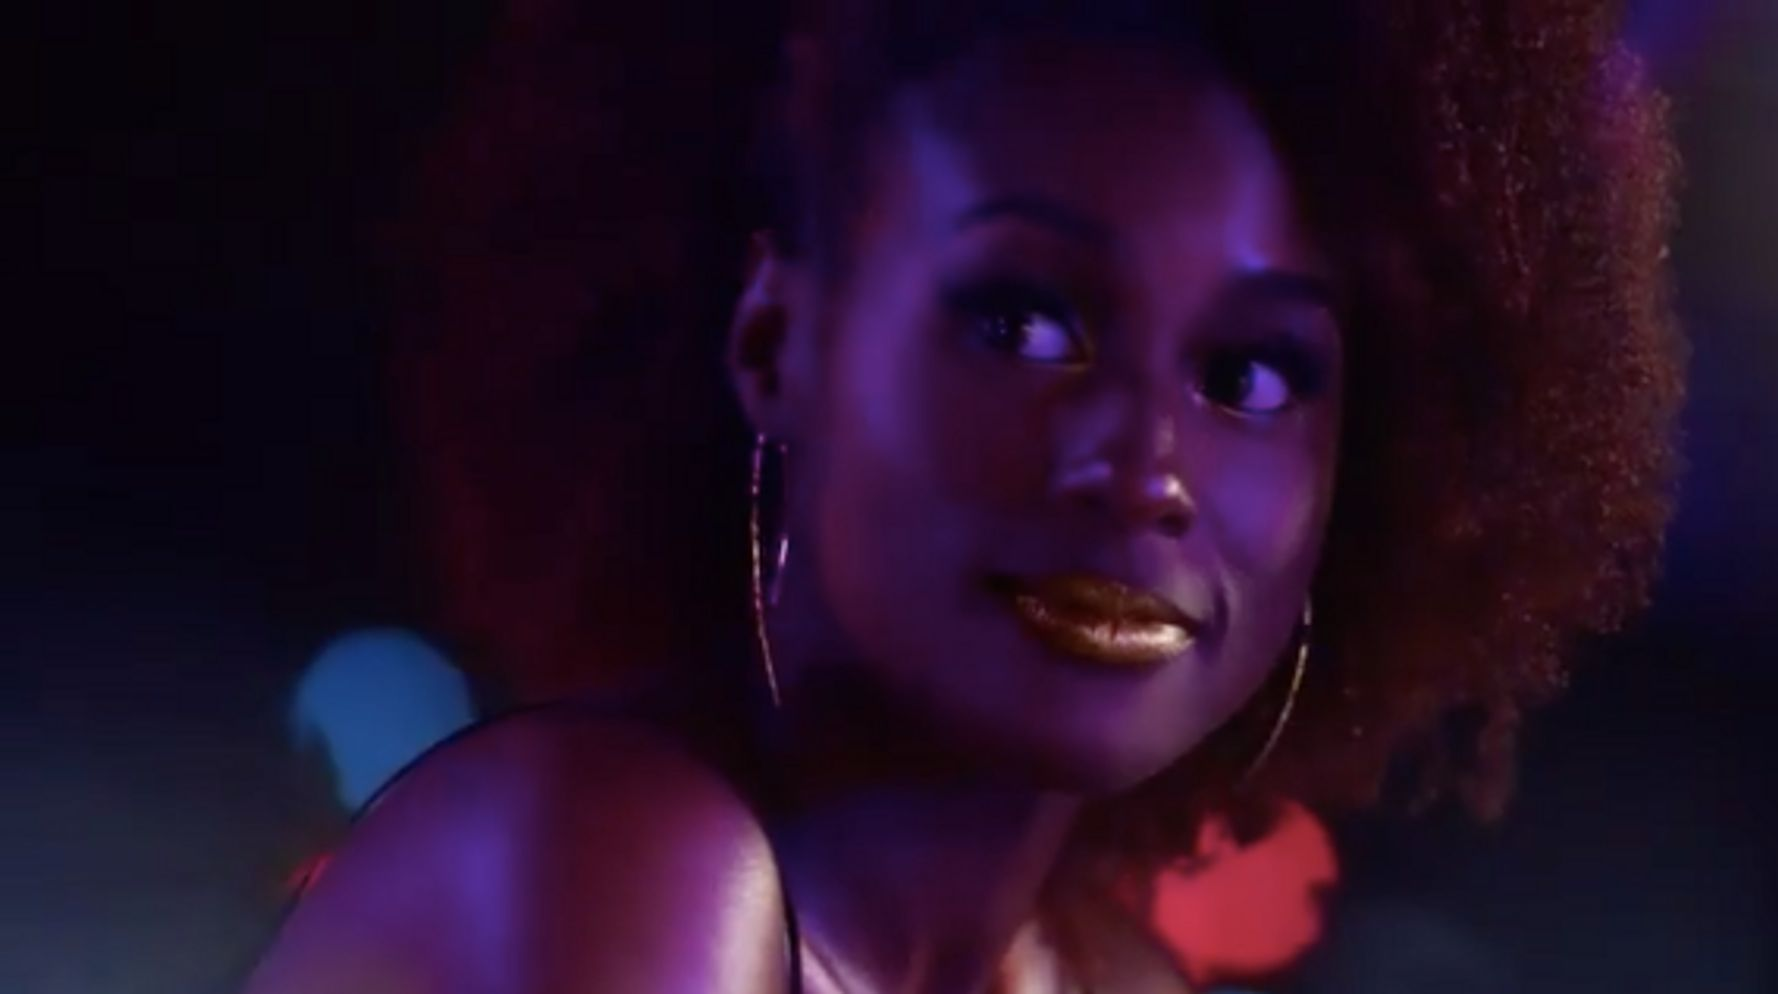 Issa Rae Is Showing Some Serious Self-Love In New CoverGirl